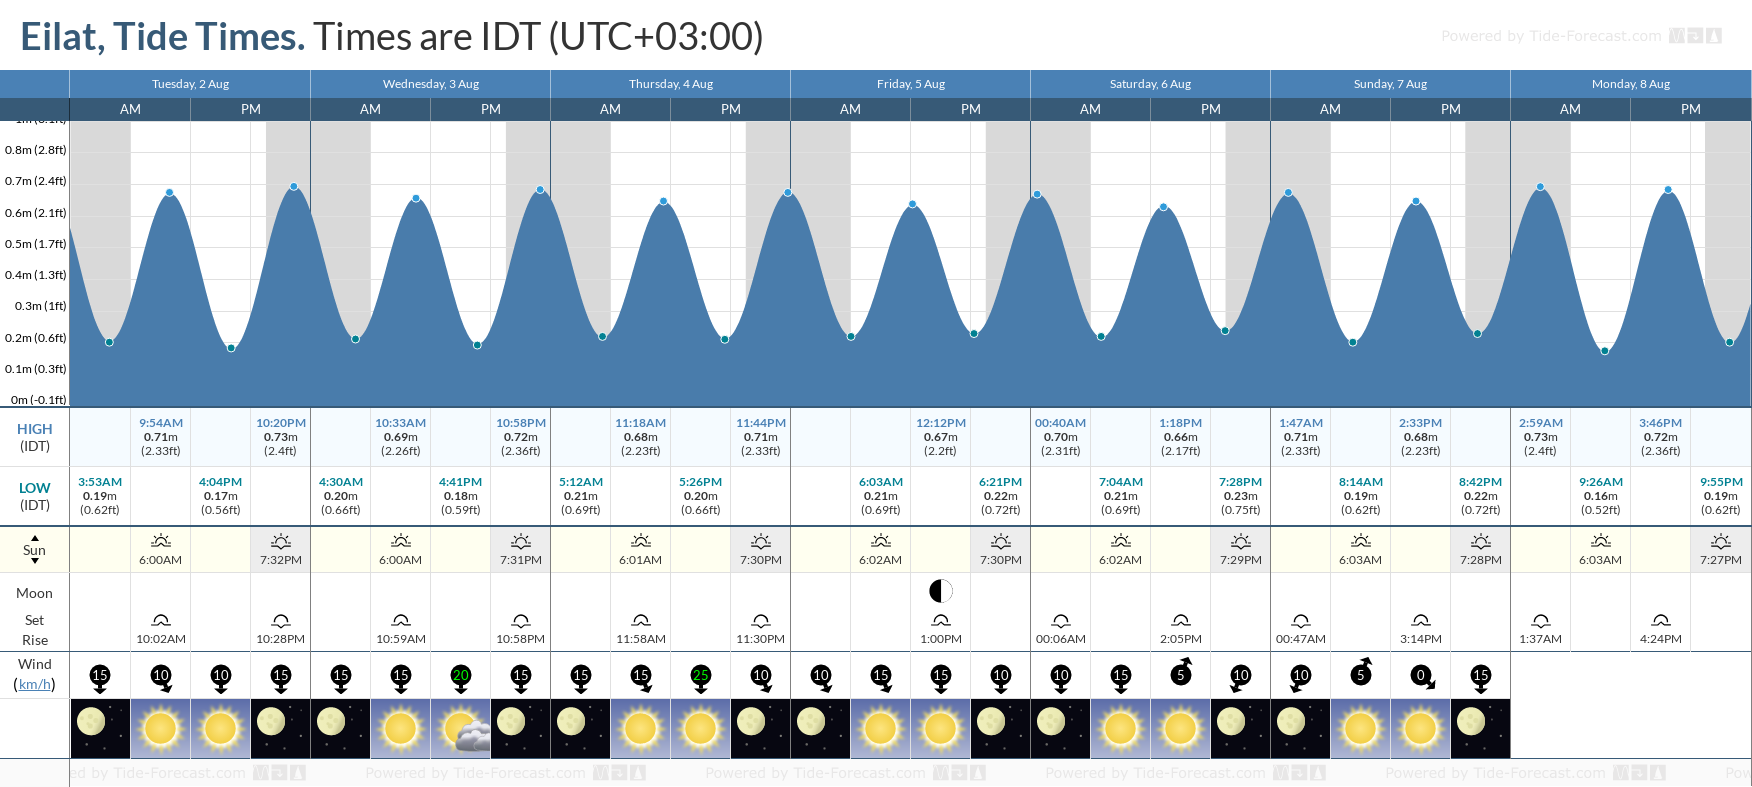 Eilat Tide Chart including high and low tide tide times for the next 7 days